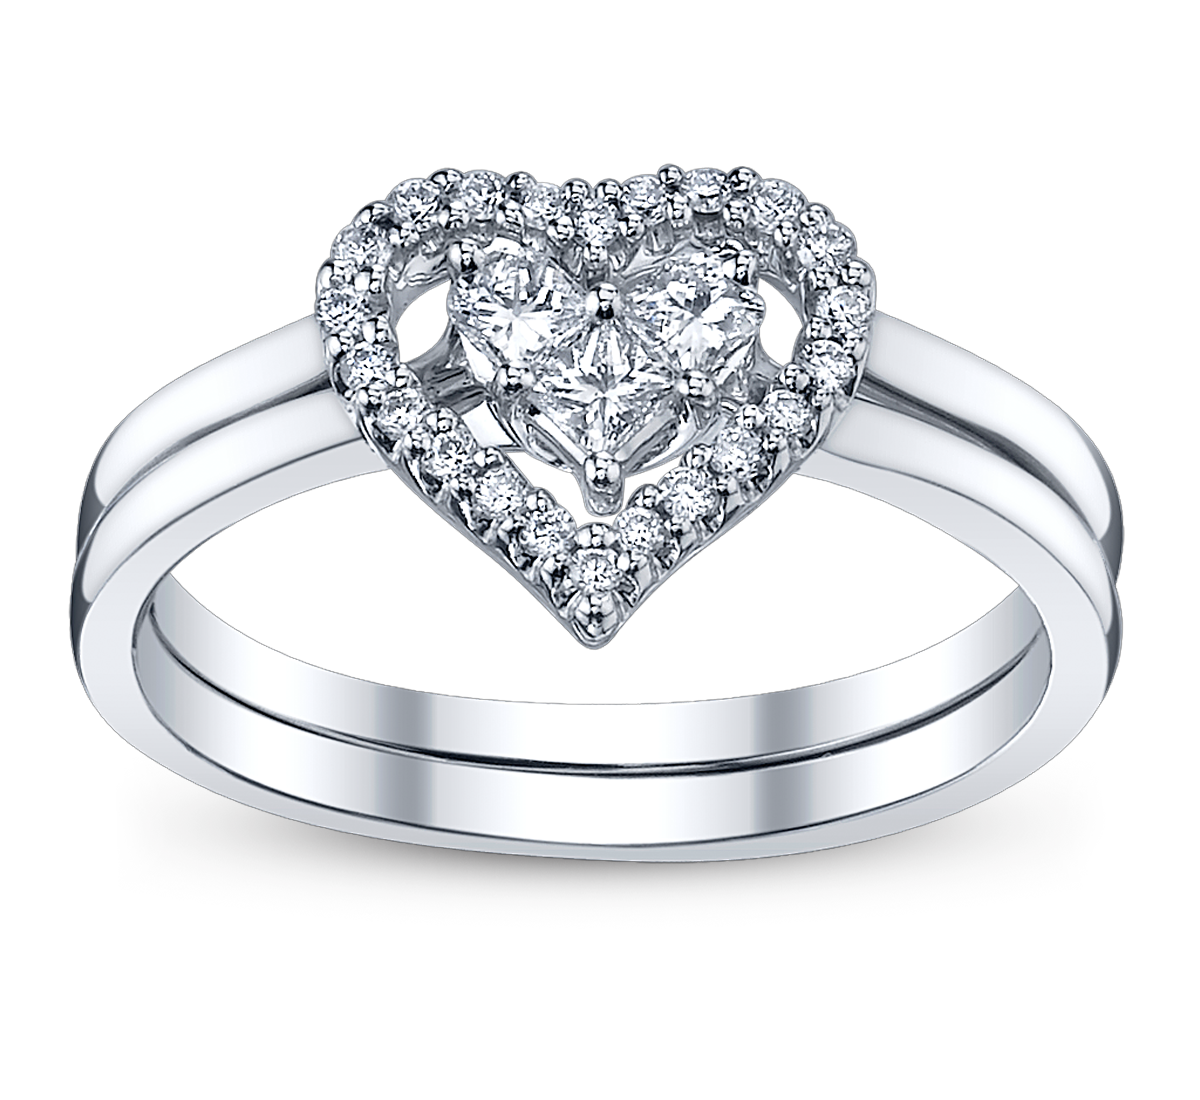 4 perfect heart bow diamond engagement rings for the holidays 4 perfect heart bow diamond engagement rings for the holidays junglespirit Choice Image